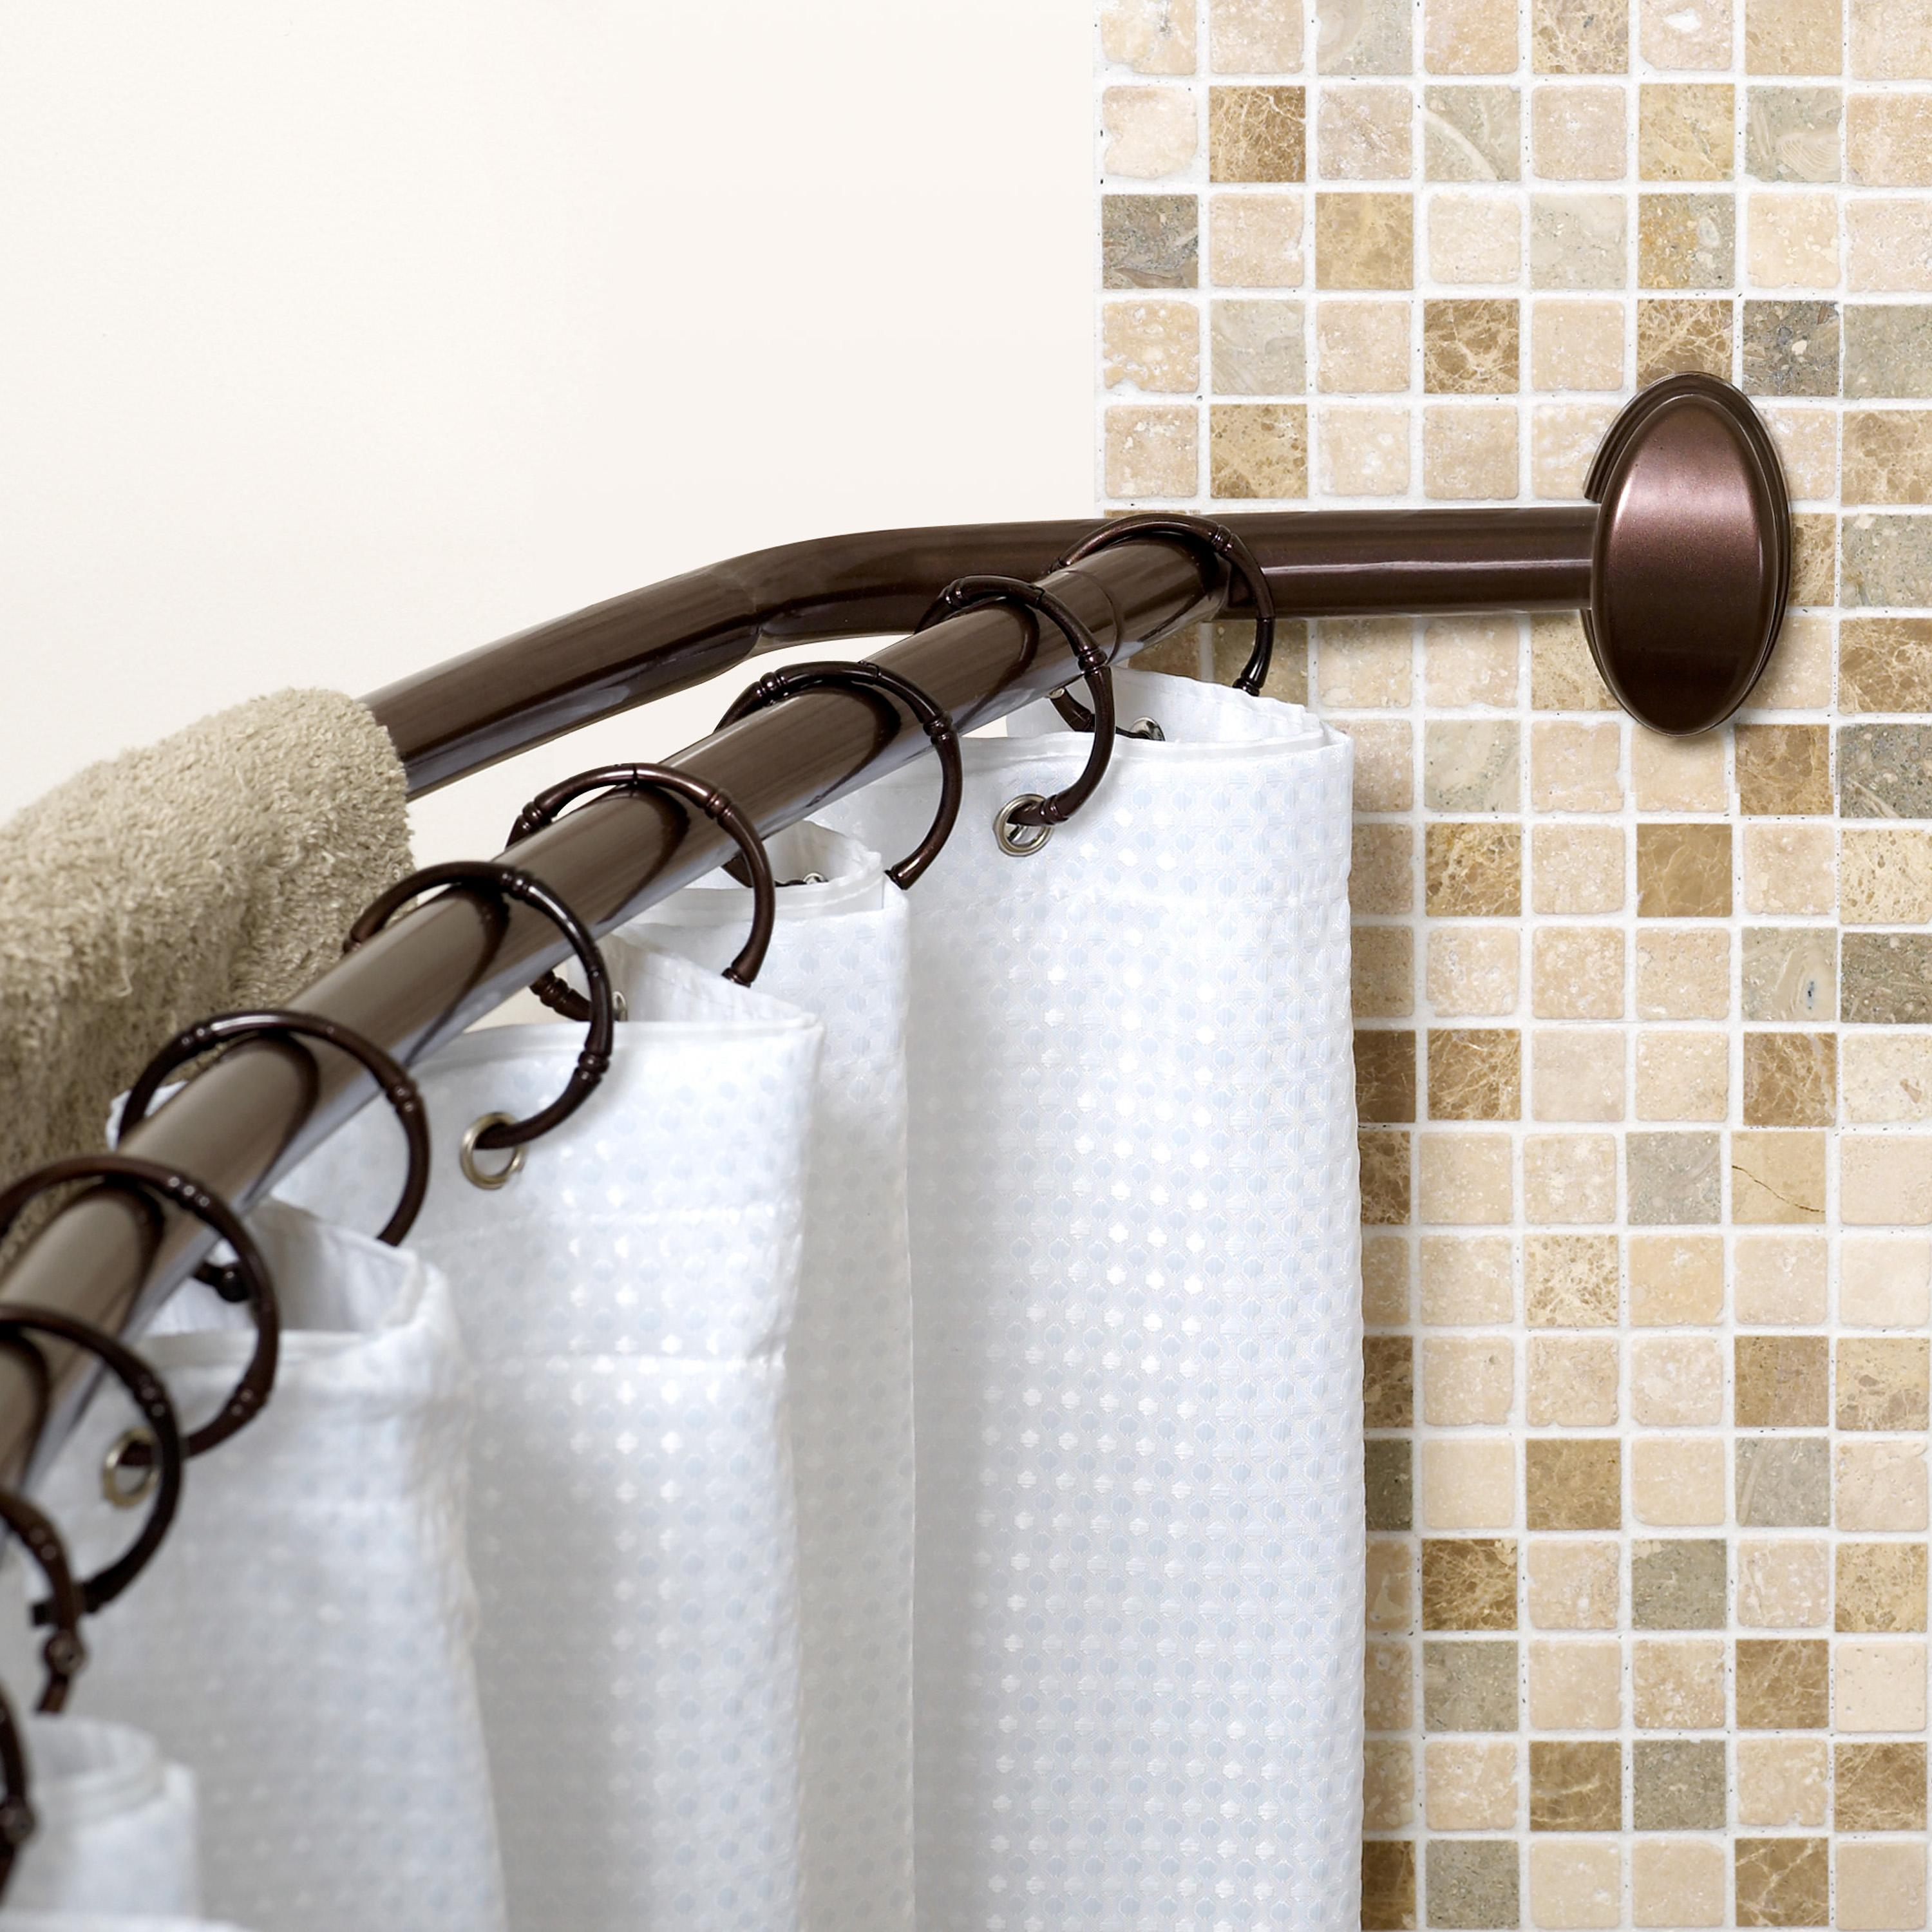 Oil Rubbed Bronze Double Shower Curtain Rod Amazon Zenna Home E35604hb Neverrust Aluminum